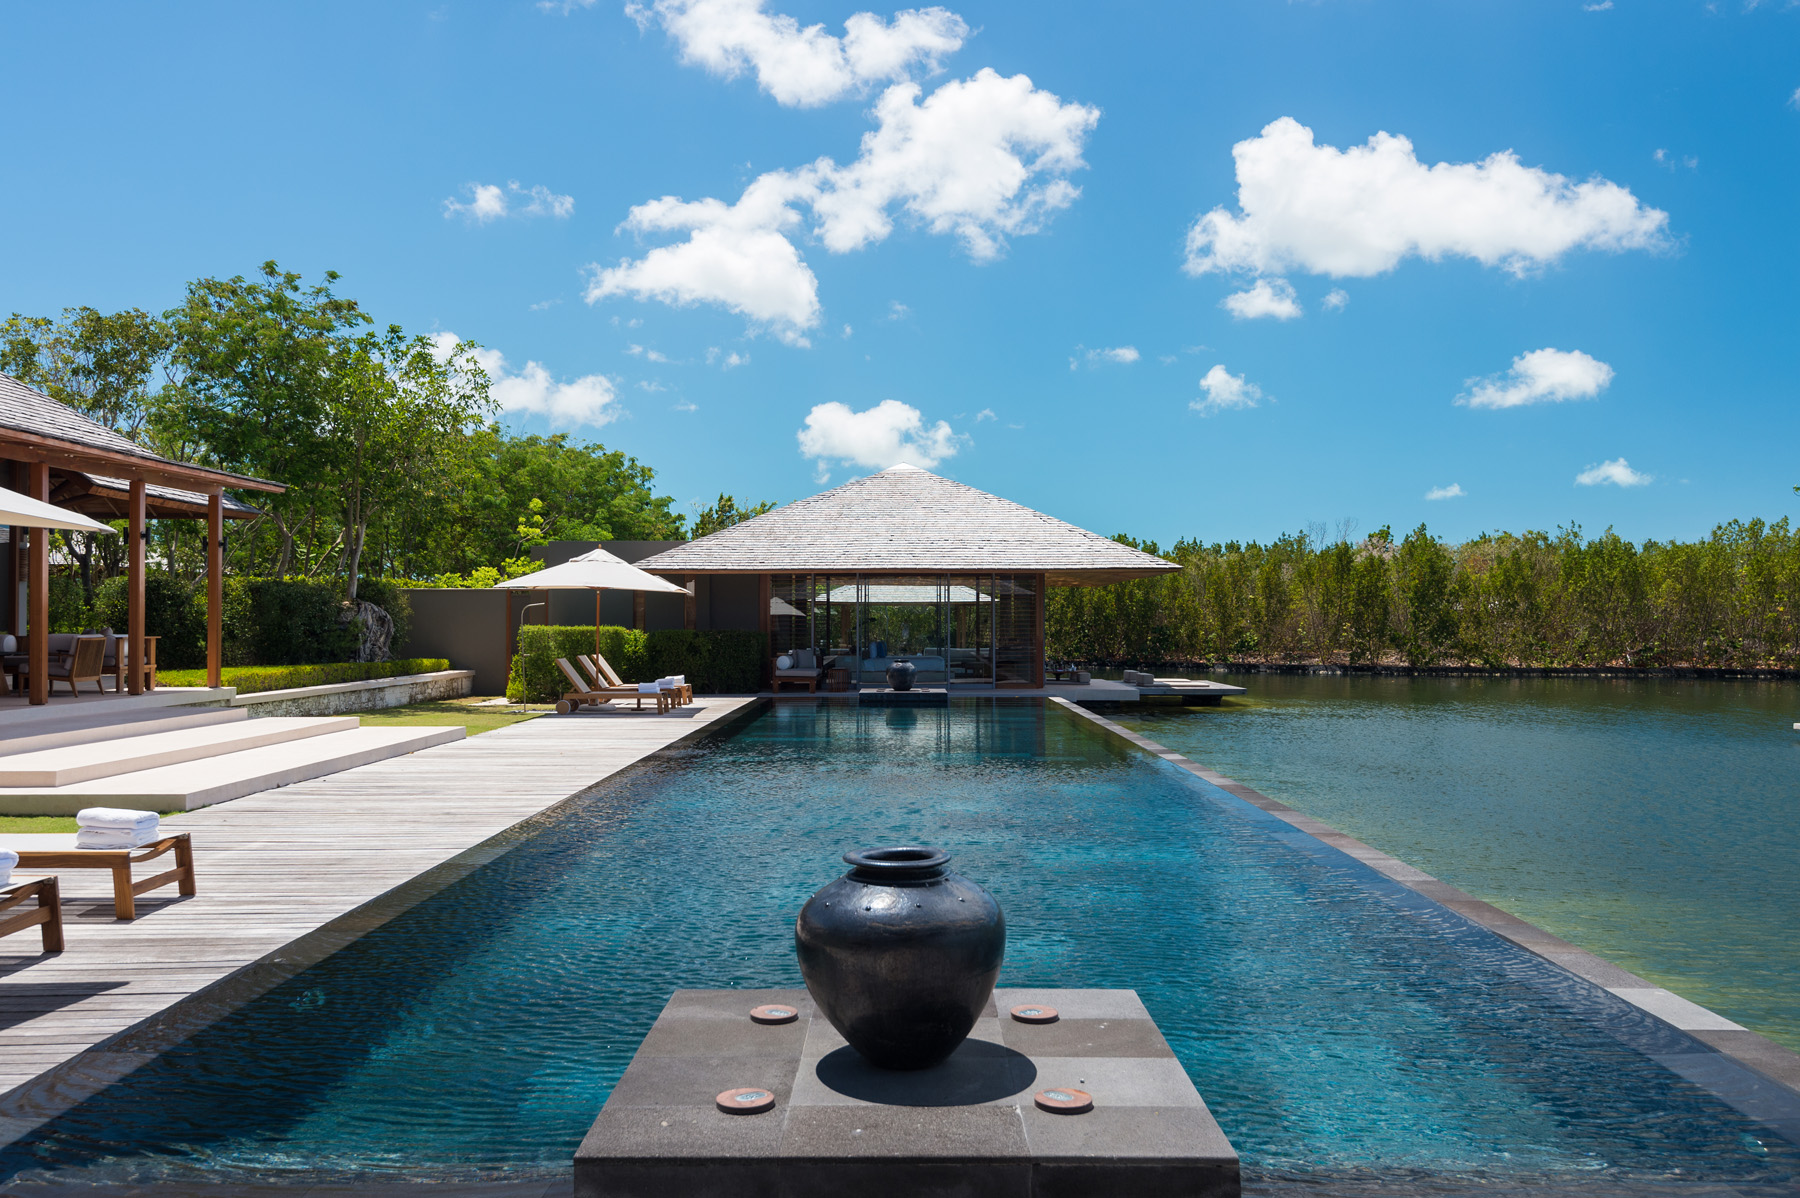 Single Family Home for Sale at Amanyara Villa 8 North West Point North West Point, Providenciales TCI Turks And Caicos Islands